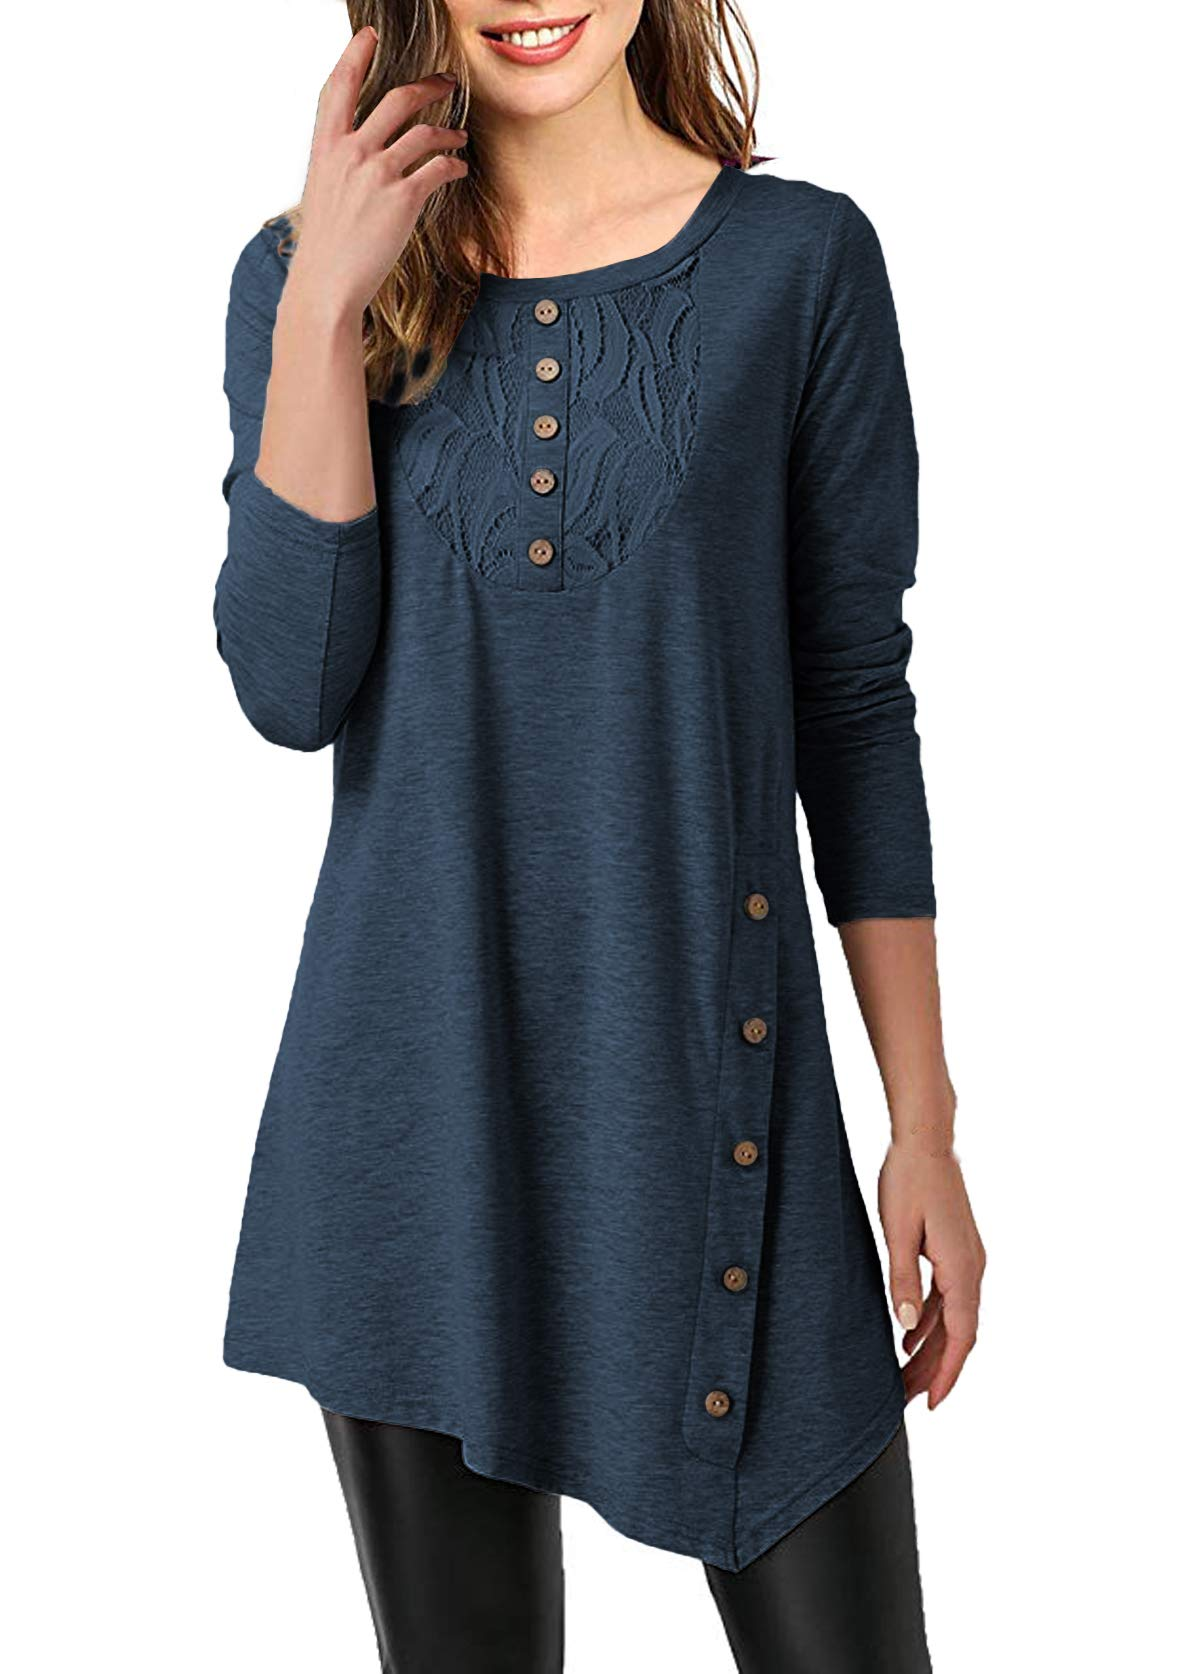 Mystry Zone Women's Shirts and Blouse Lace Buttons Neck Solid Color Tunics Blouse Navyblue Large by Mystry Zone